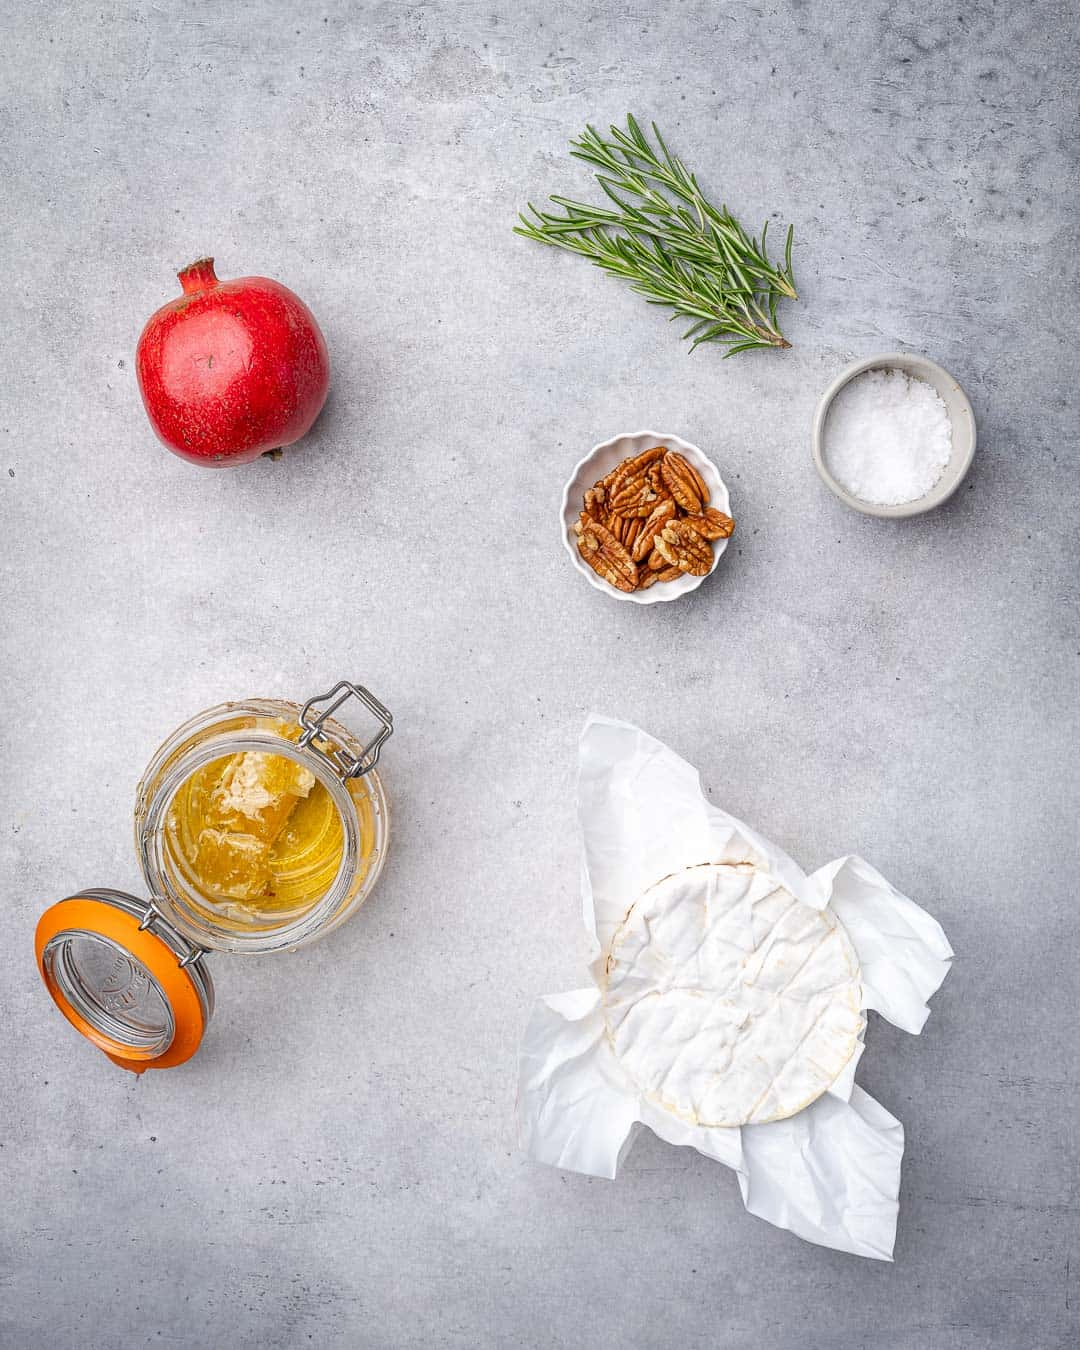 Ingredients for baked brie on counter